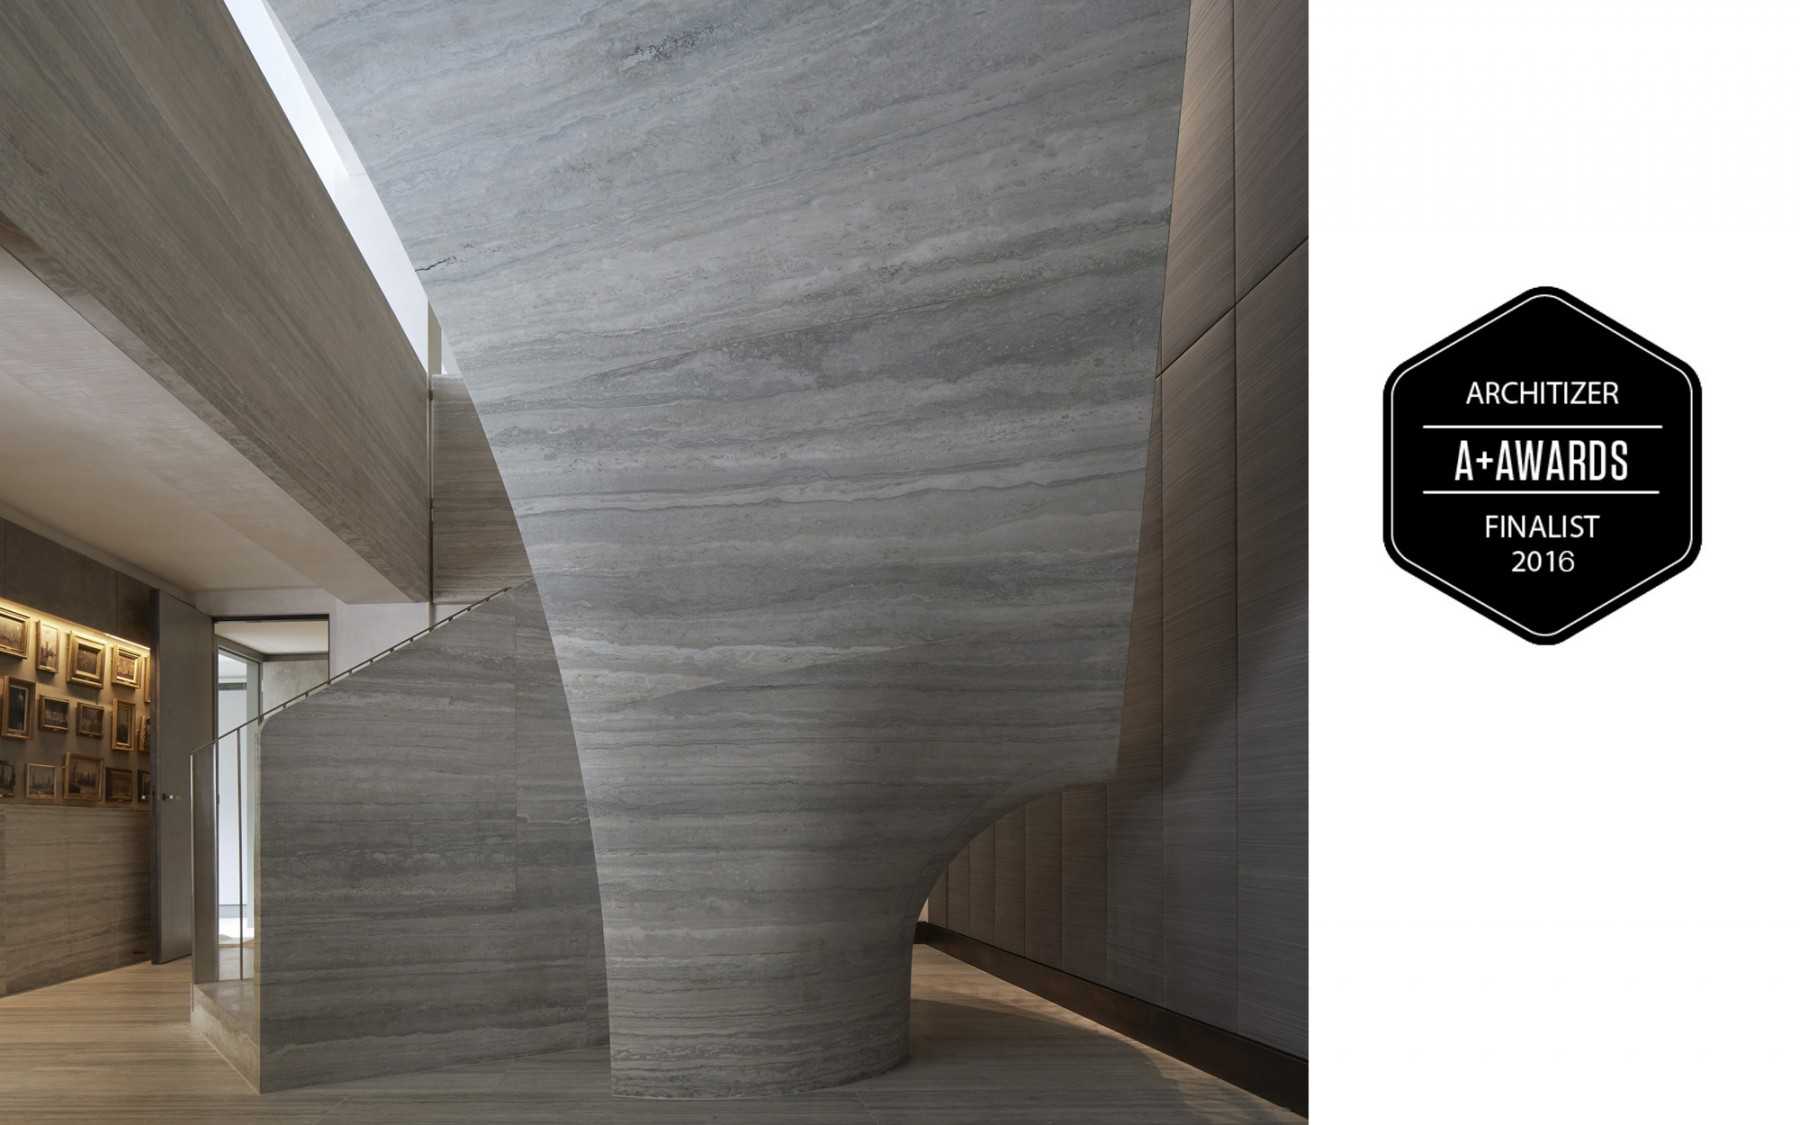 Jamie-Fobert-Architects- Travertine-stair-Architizer-Awards-finalist-luxury-apartment- beautiful-stone-stair